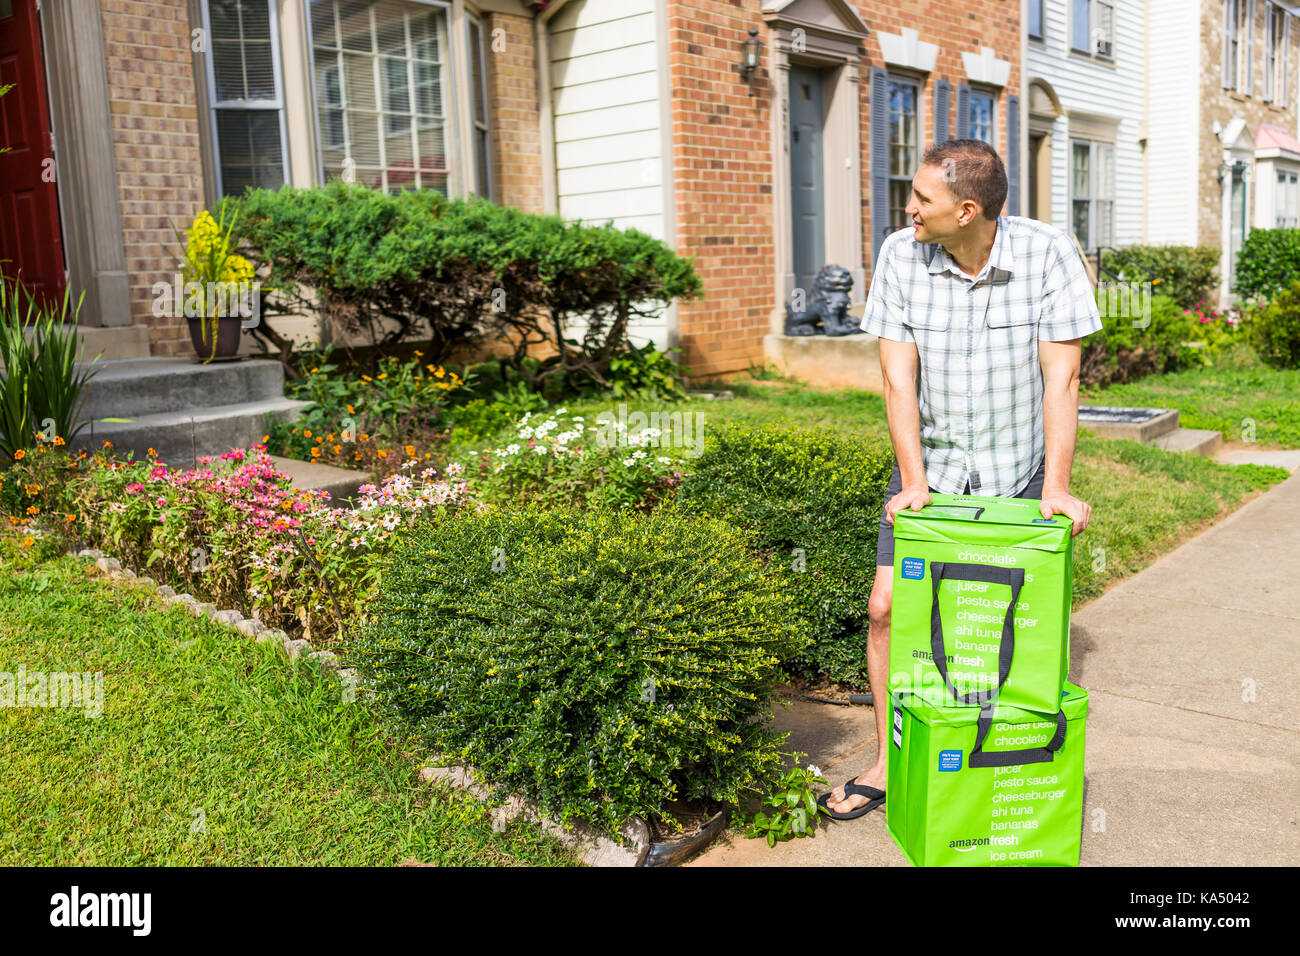 Fairfax, USA - September 12, 2017: Amazon Fresh insulated grocery delivery bags, totes on front home house porch - Stock Image